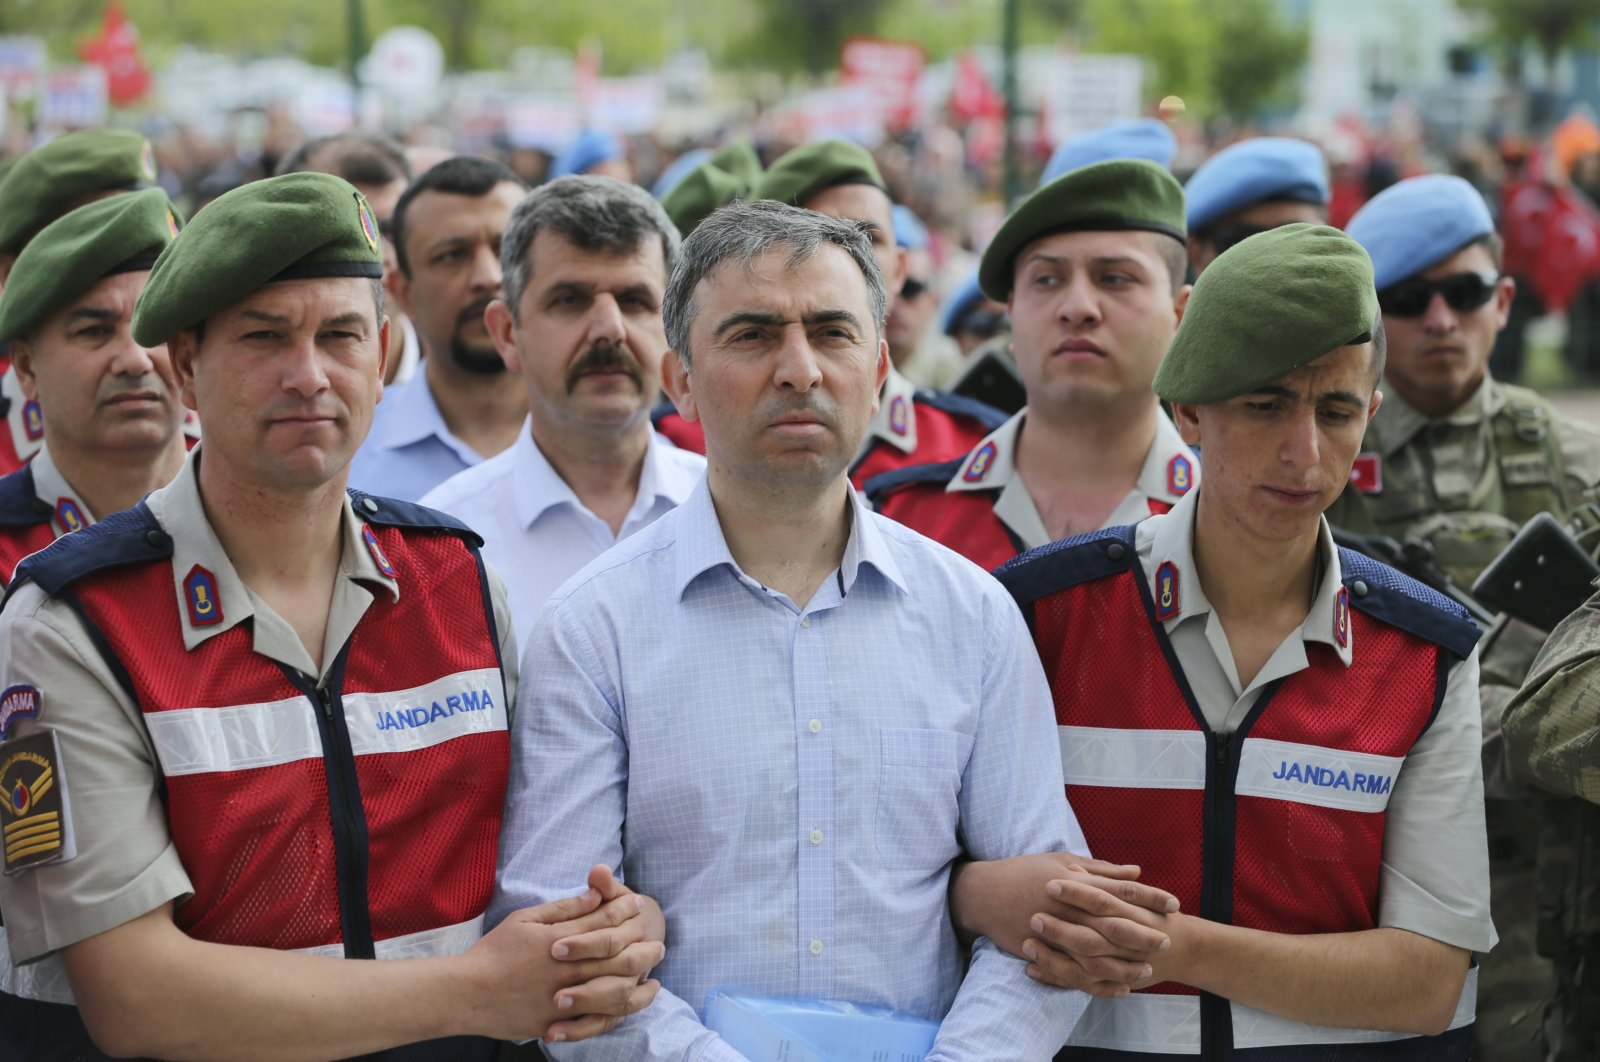 Muhsin Kutsi Barış, one of the defendants in the trial, is escorted to the courthouse for another coup-related trial, in the capital Ankara, Turkey, June 2, 2017. (AA PHOTO)